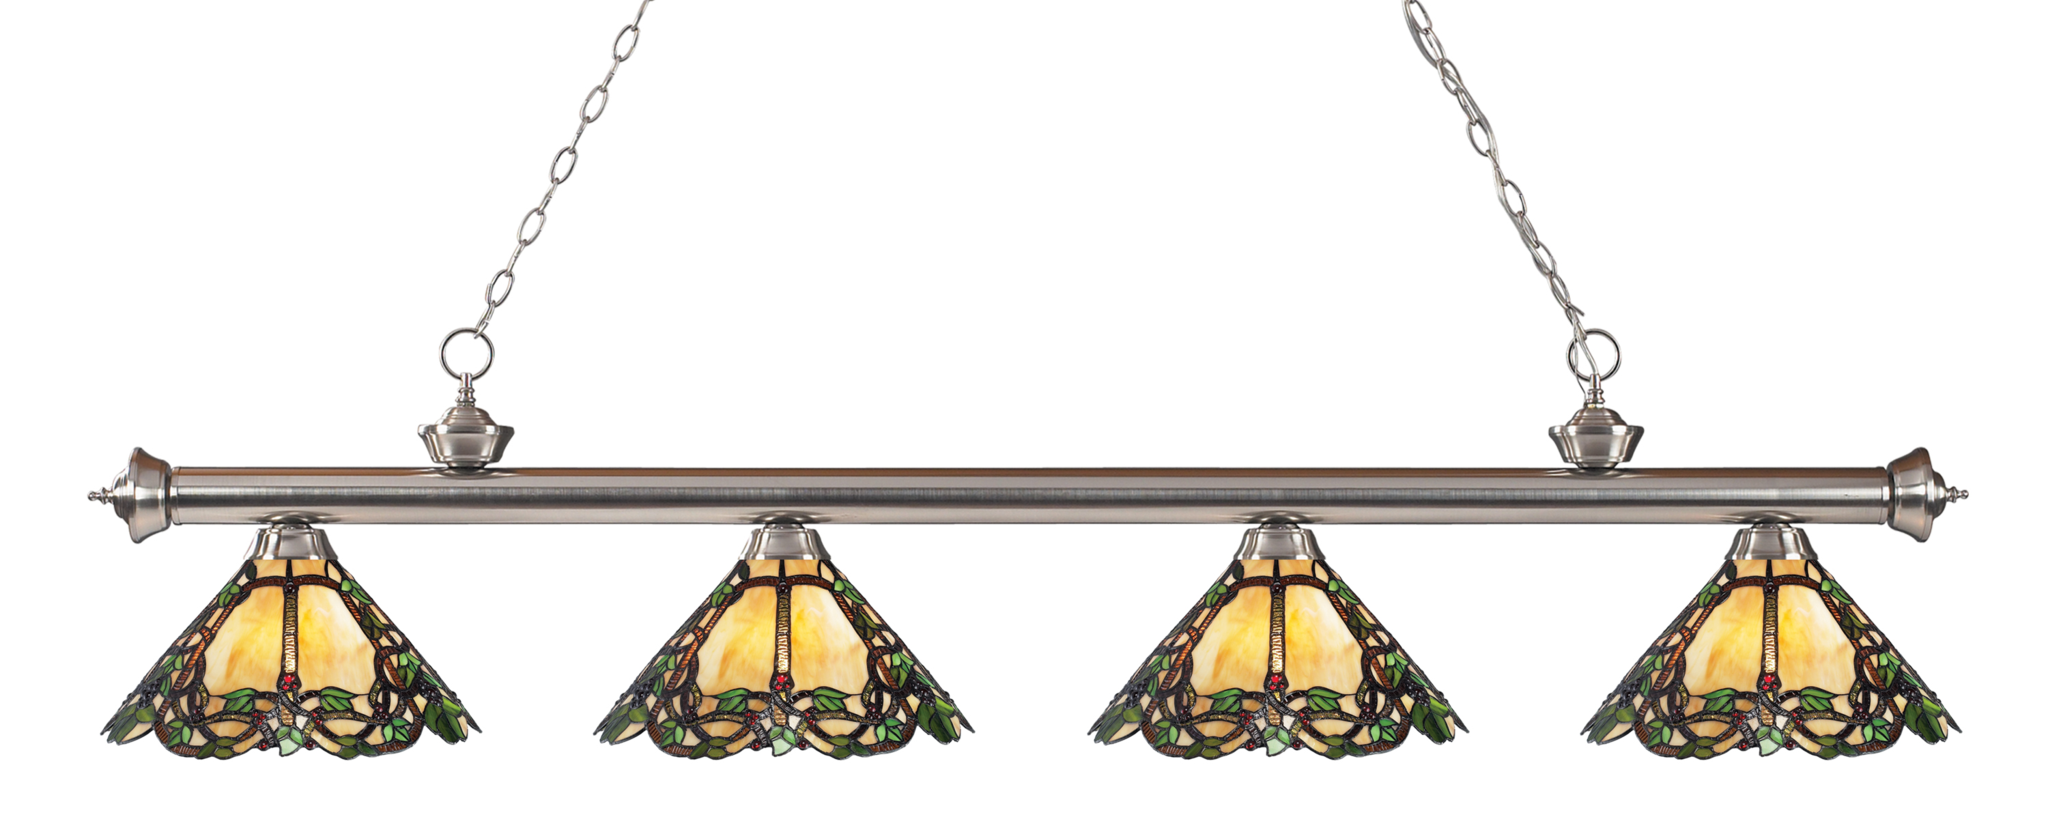 Z Lite Riviera 4 Light Billiard With Tiffany Glass Shades At Lowe S Canada Find Our Selection Of Pool Table Lights The T